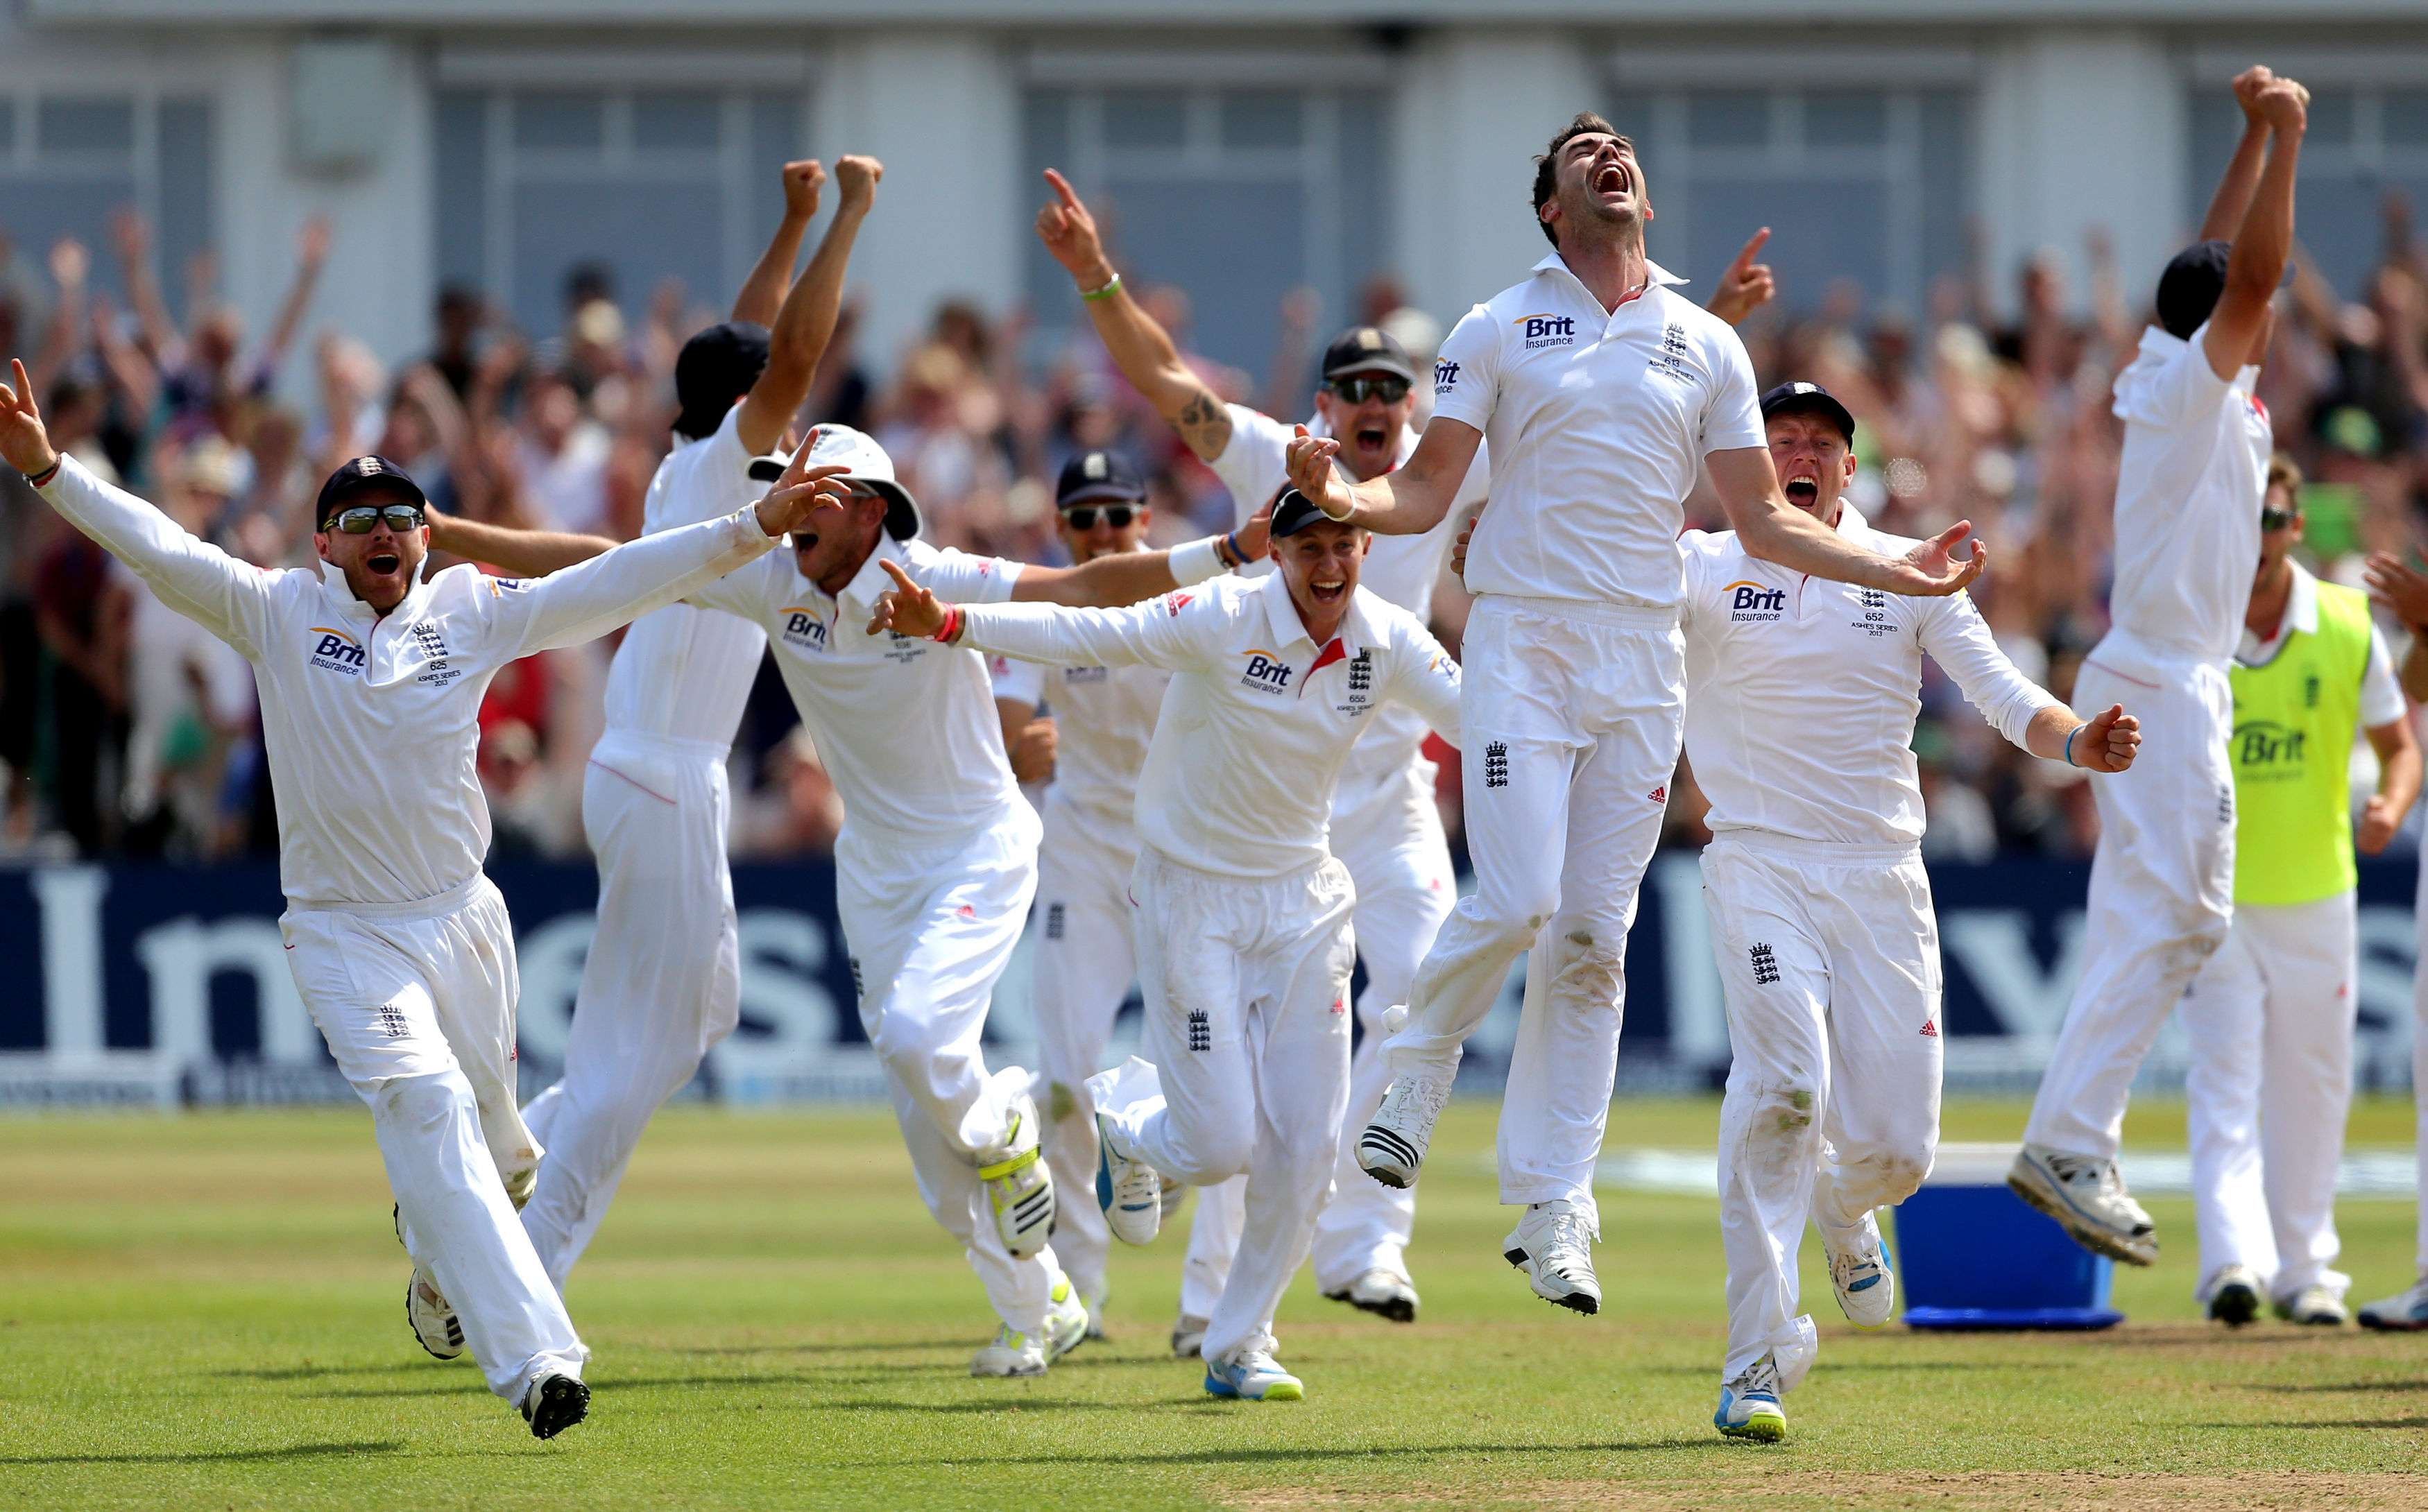 England Finish on 240/7 at stumps on Day 1 in 3rd Test against West Indies